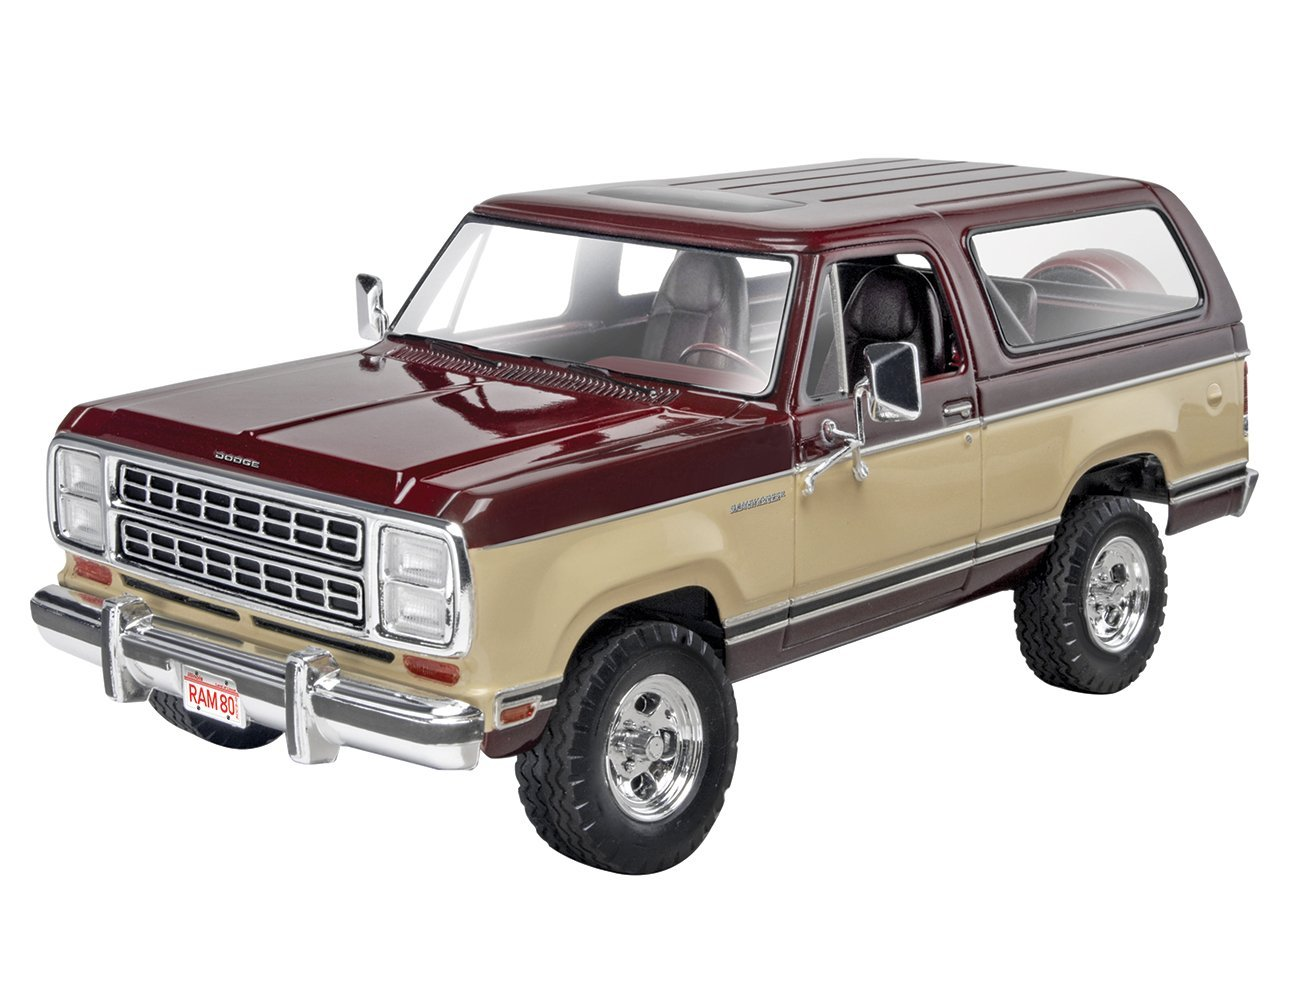 '80 Dodge Ramcharger Plastic Model Kit, Challenge yourself by assembling your own... by